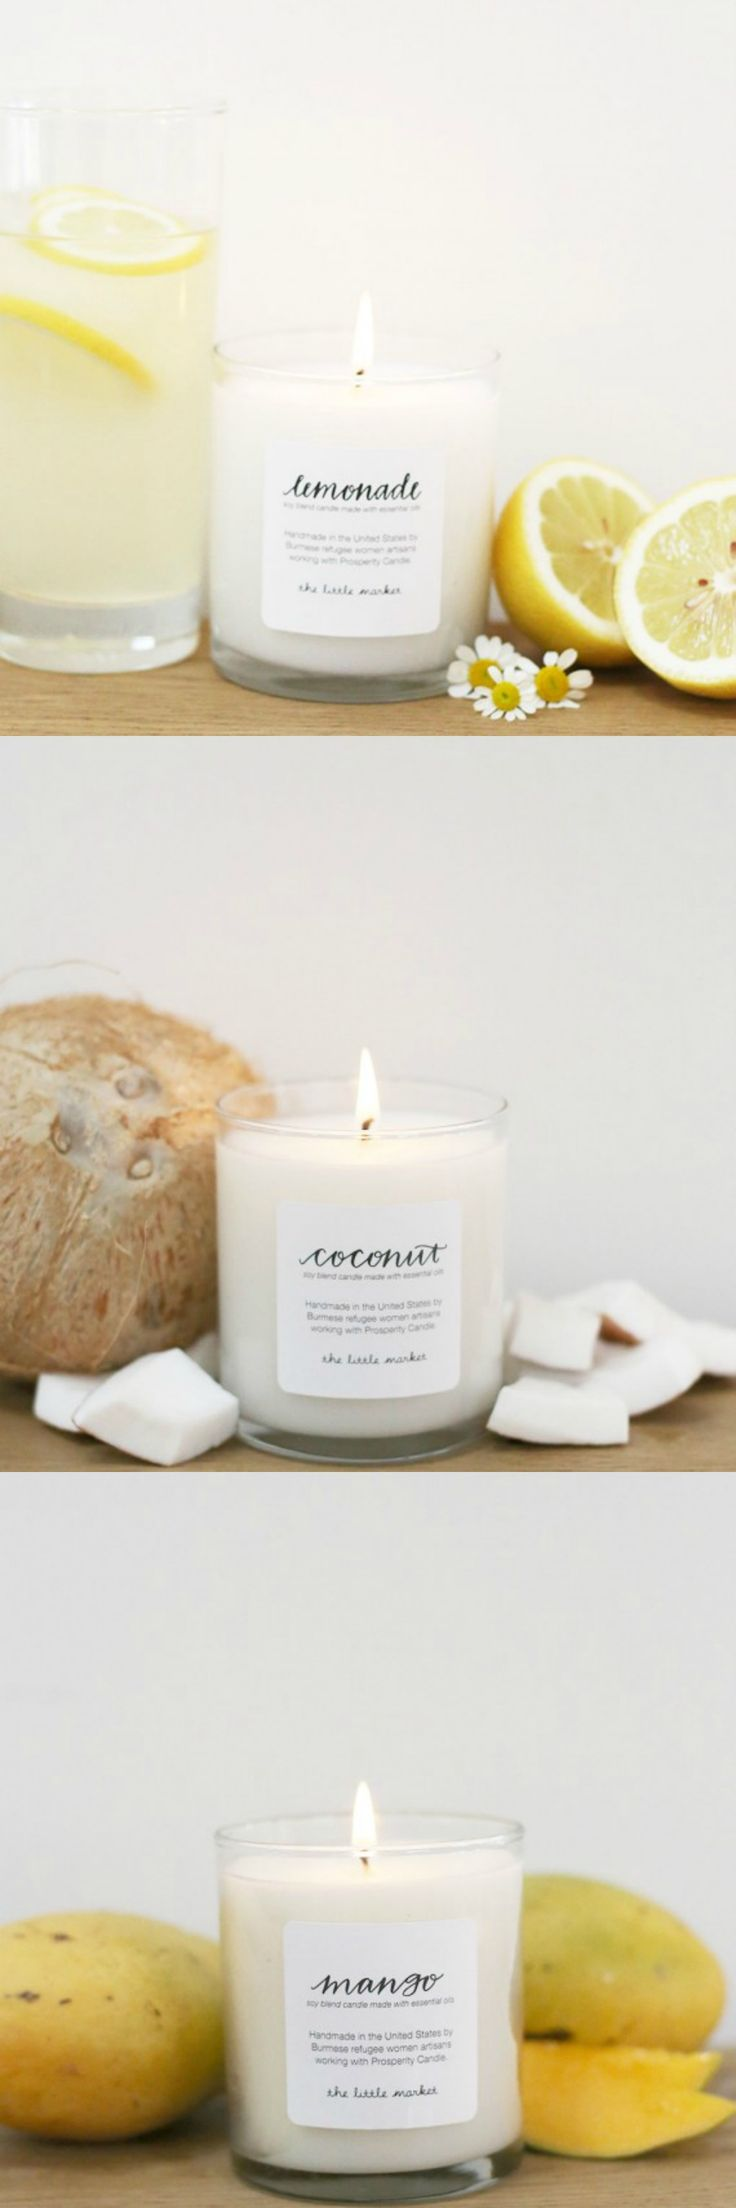 The Little Market summer candle collection